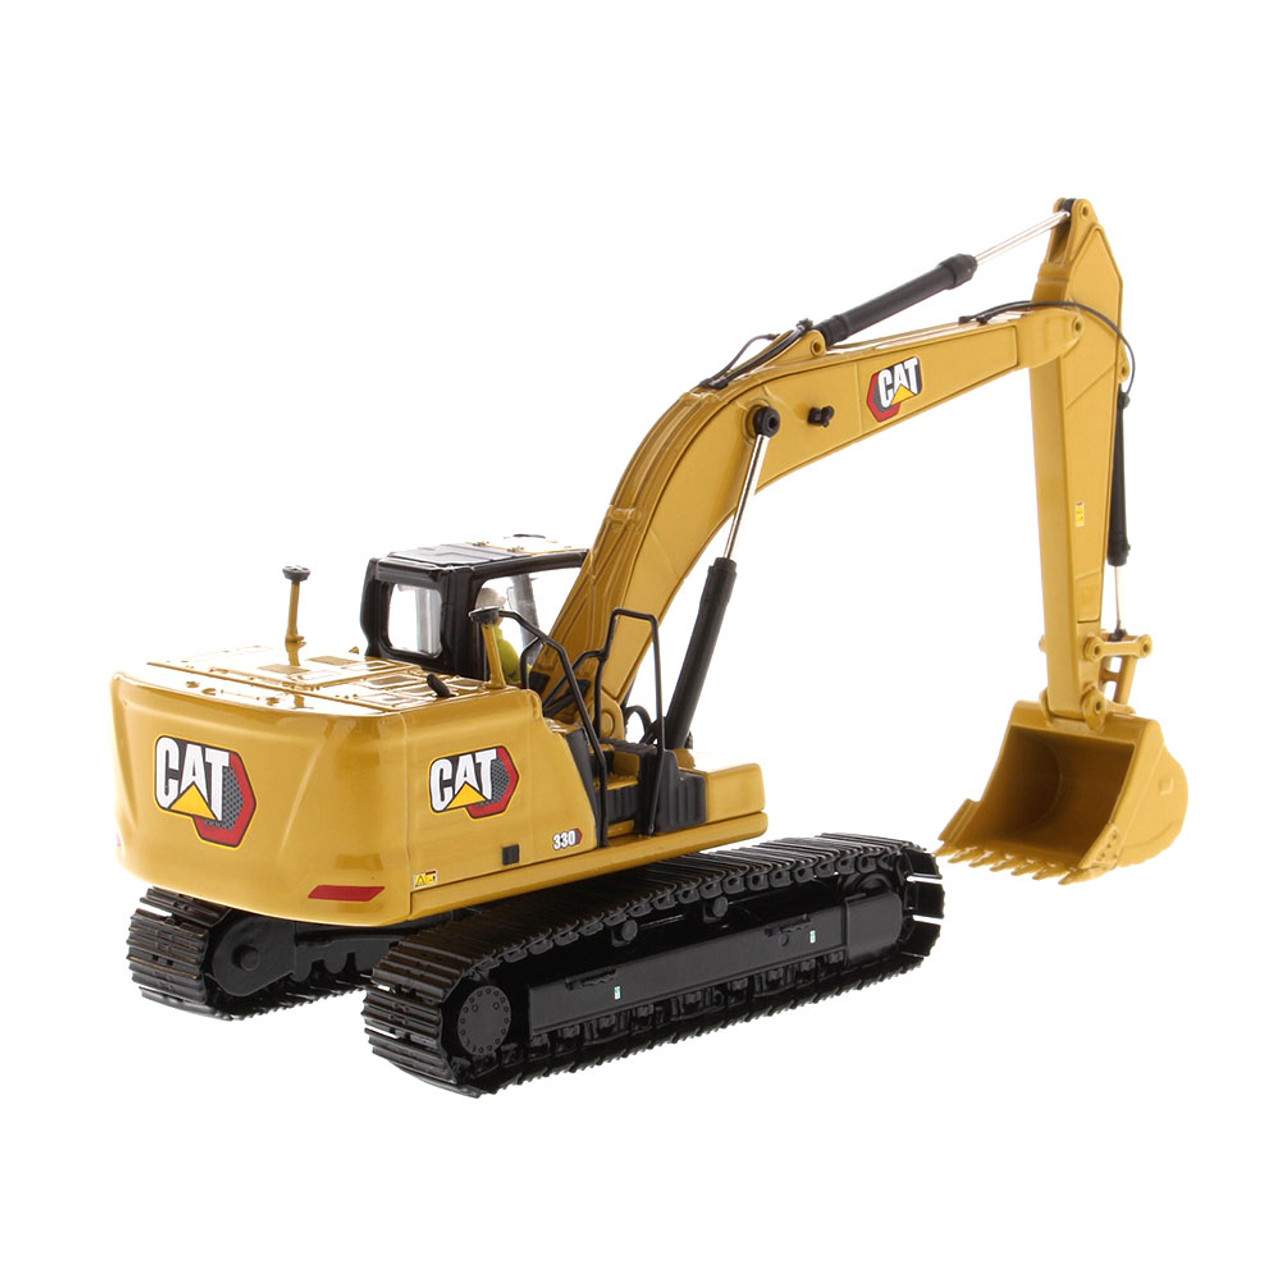 Diecast Masters Caterpillar 330 Hydraulic Excavator - Next Generation - High Line Series 1/50